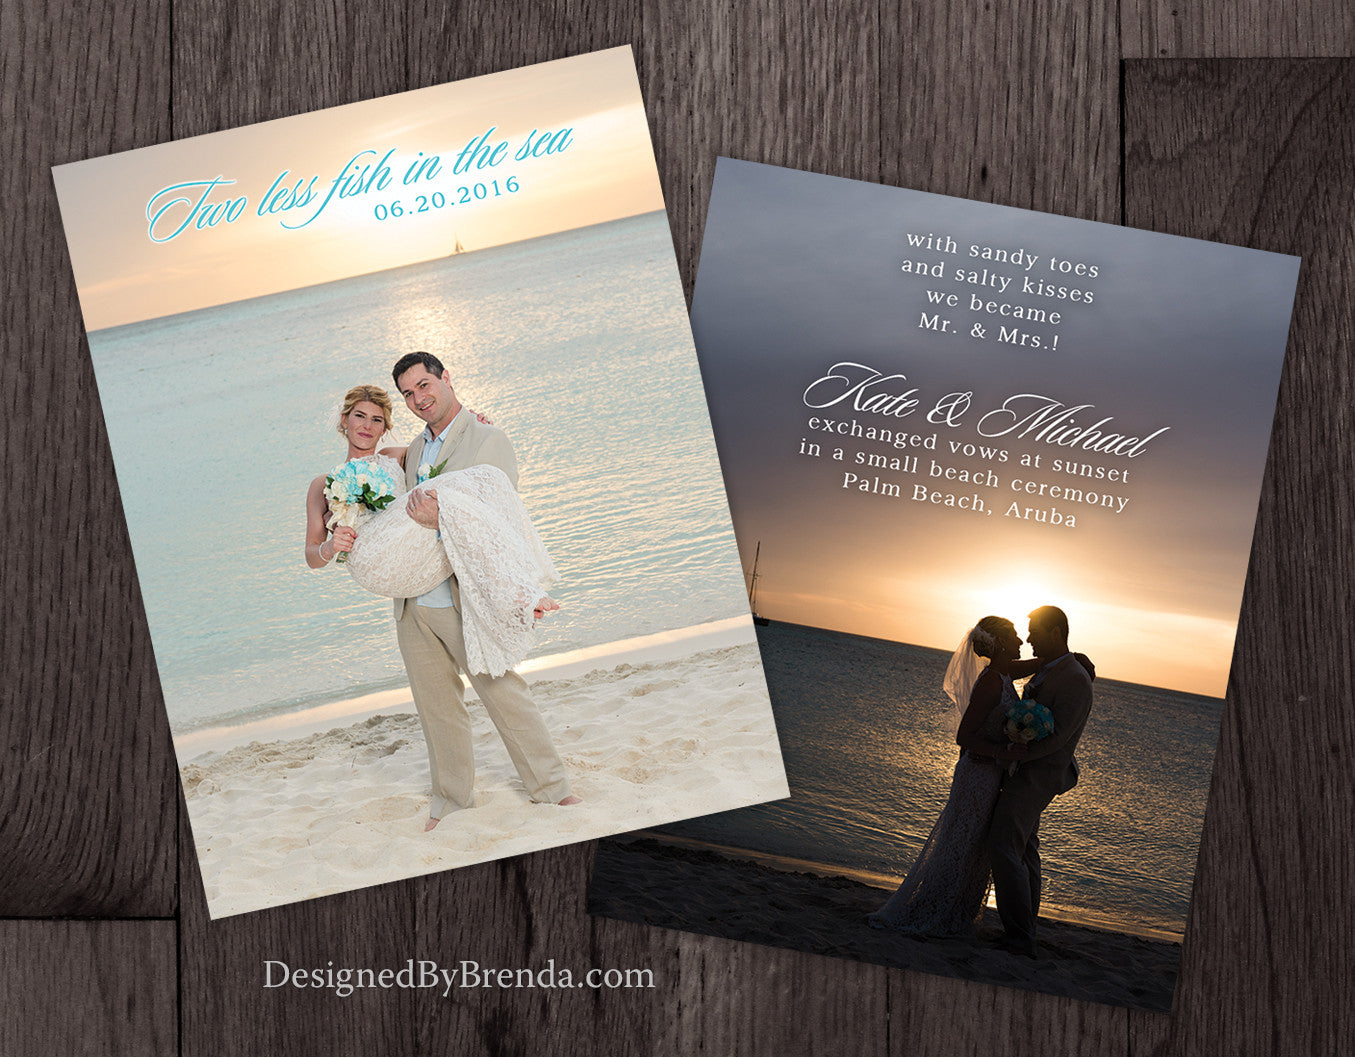 Two Less Fish in the Sea Wedding Announcement with Photos - Sandy Toes & Salty Kisses